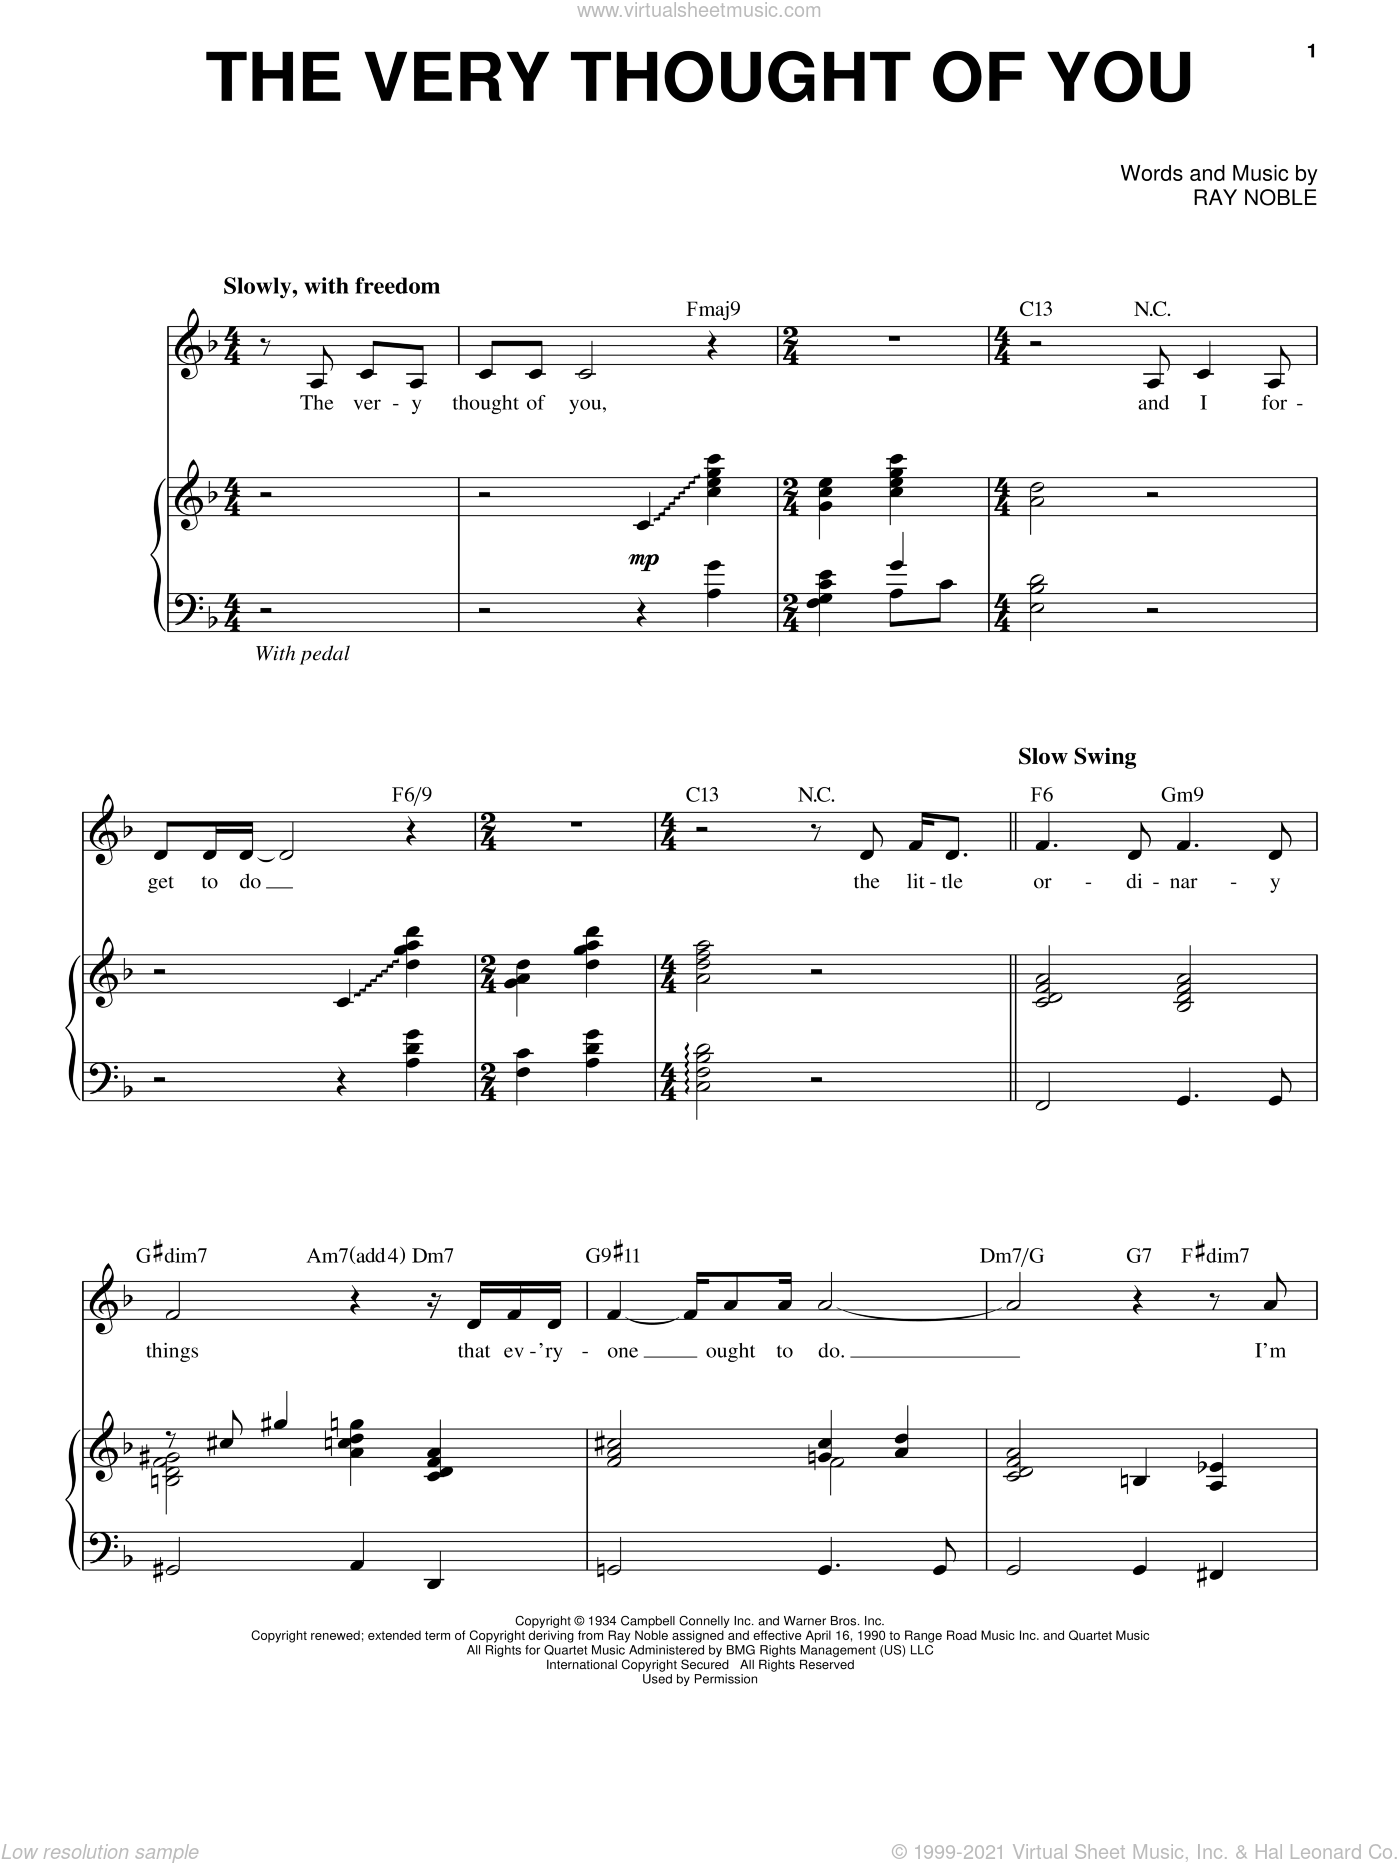 The Very Thought Of You sheet music for voice and piano by Michael Buble, Frank Sinatra, Kate Smith, Nat King Cole, Ray Conniff, Ricky Nelson and Ray Noble, intermediate skill level